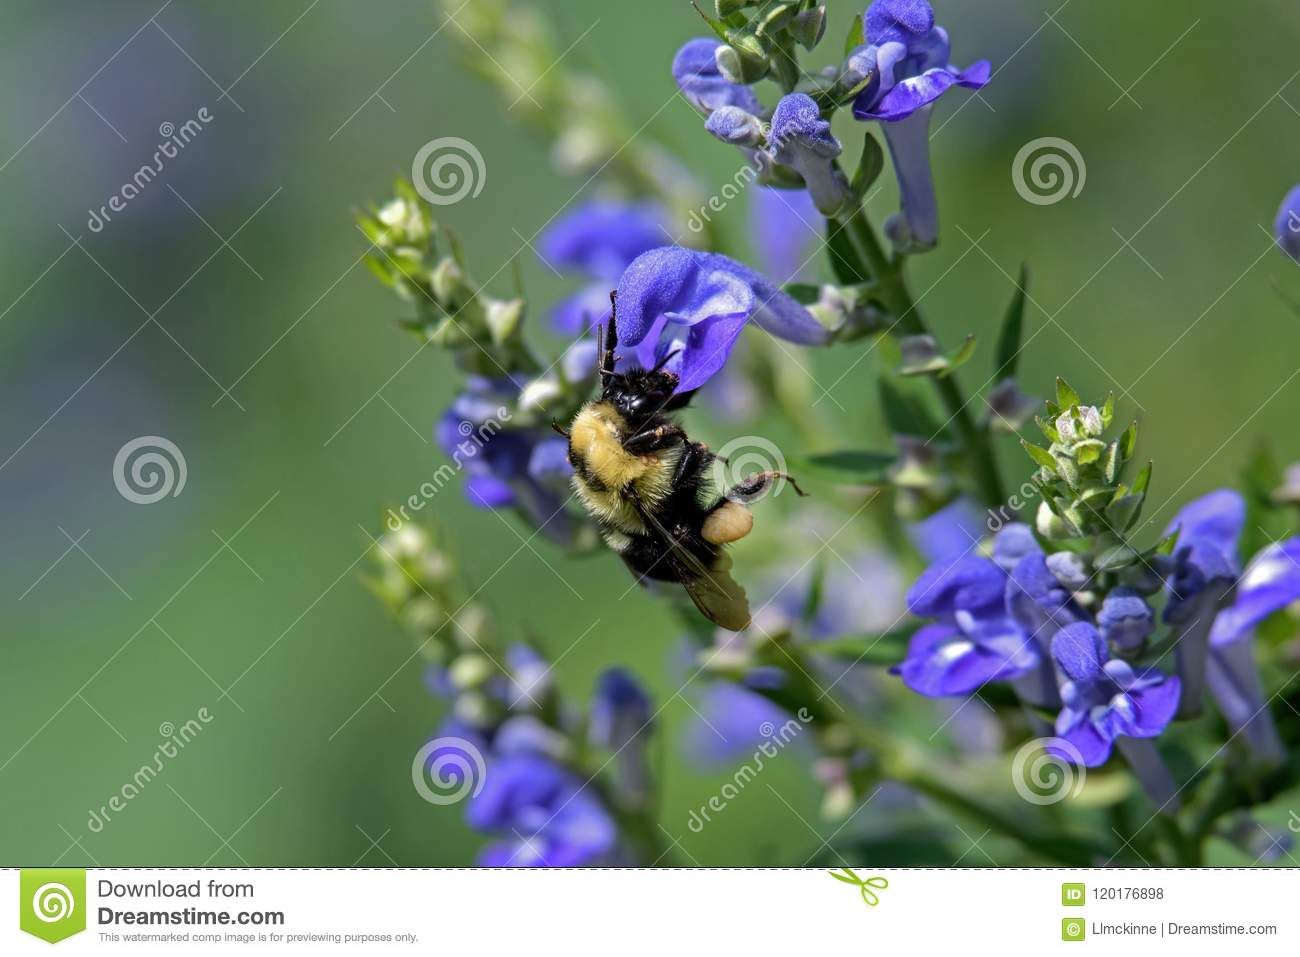 Bumblebee On Downy Skullcap Stock Photo - Image of downy, collecting